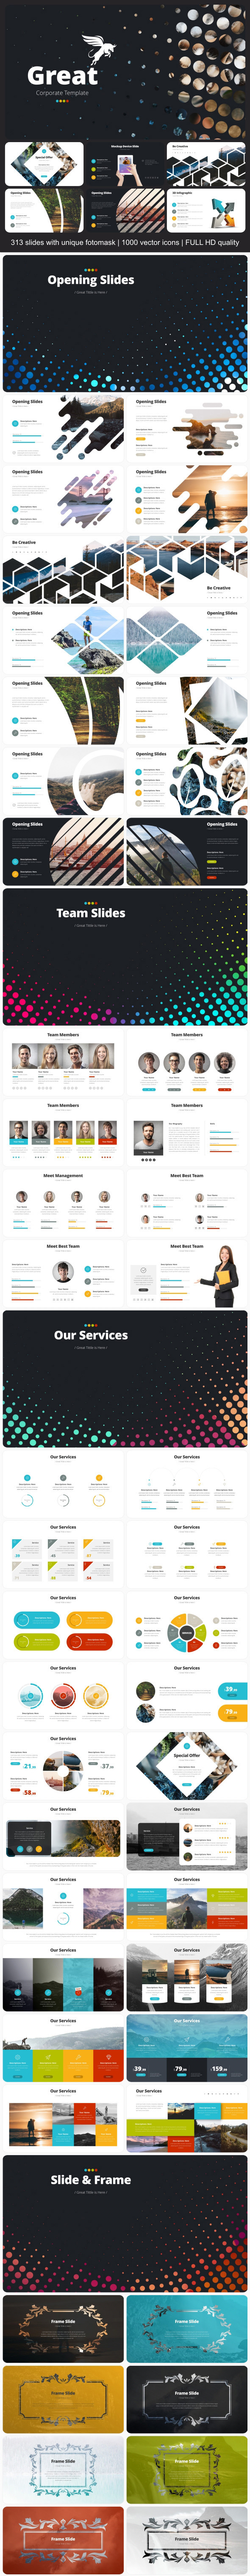 Great Corporate - Business Keynote Templates